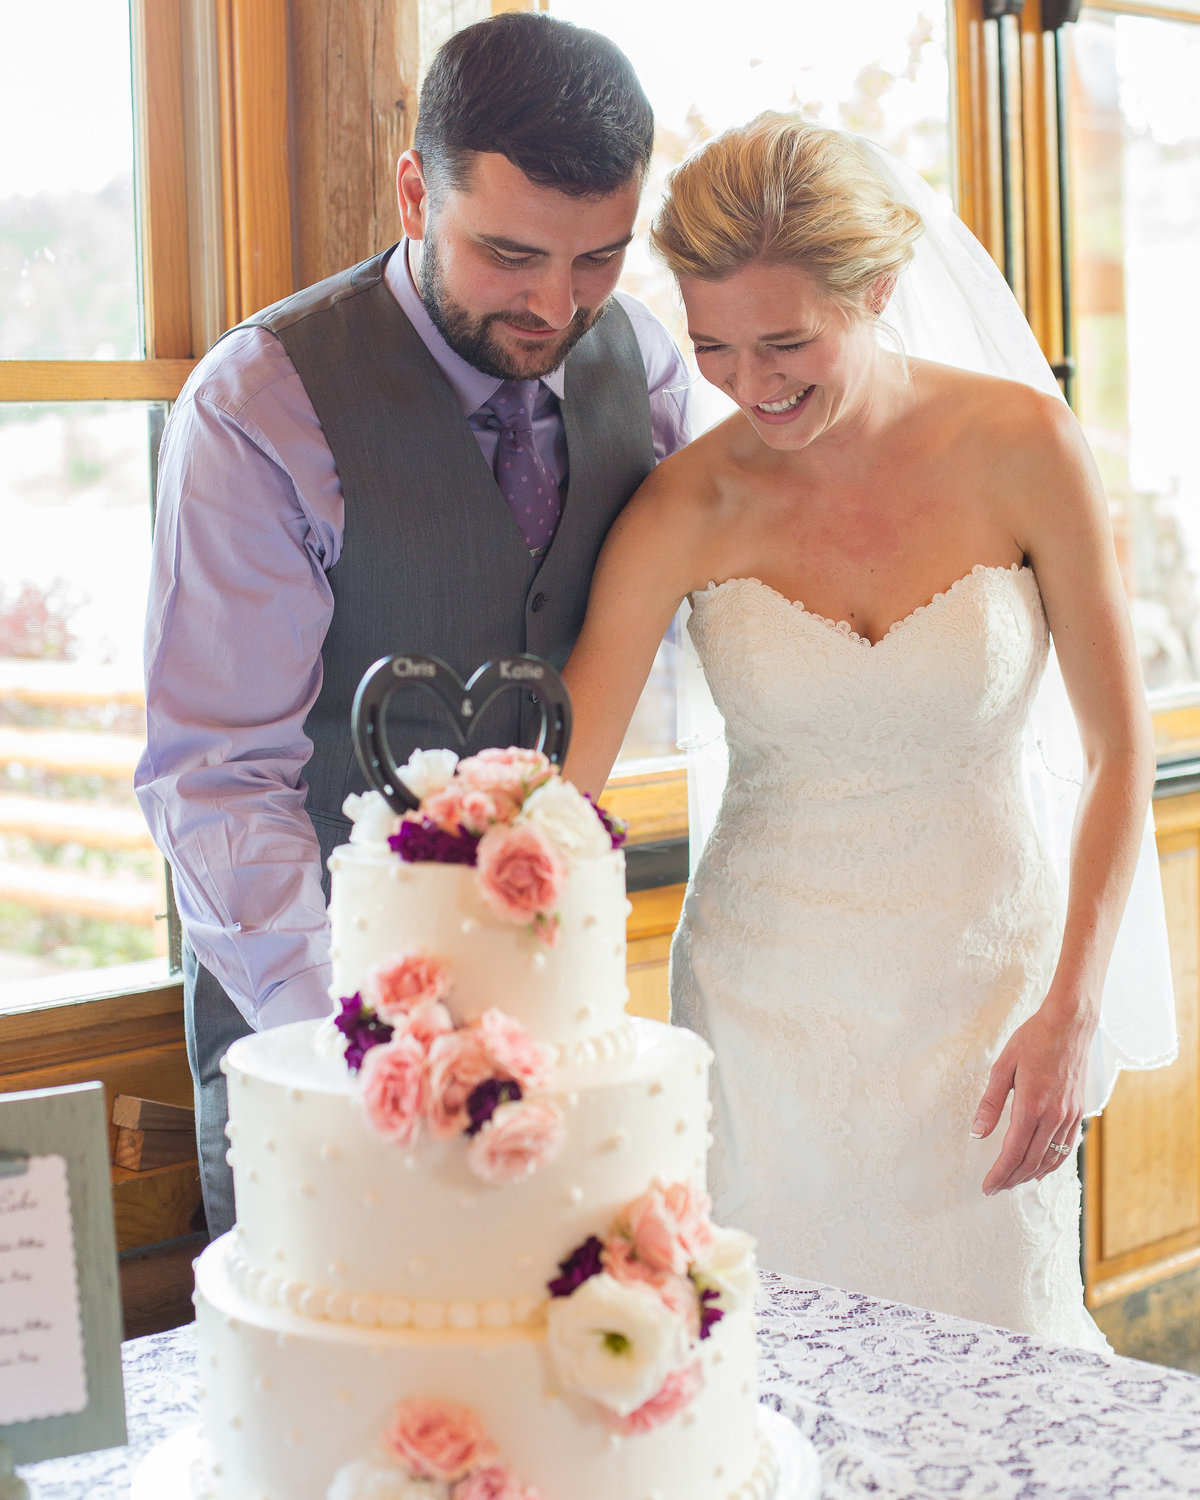 cake-cutting-colorado